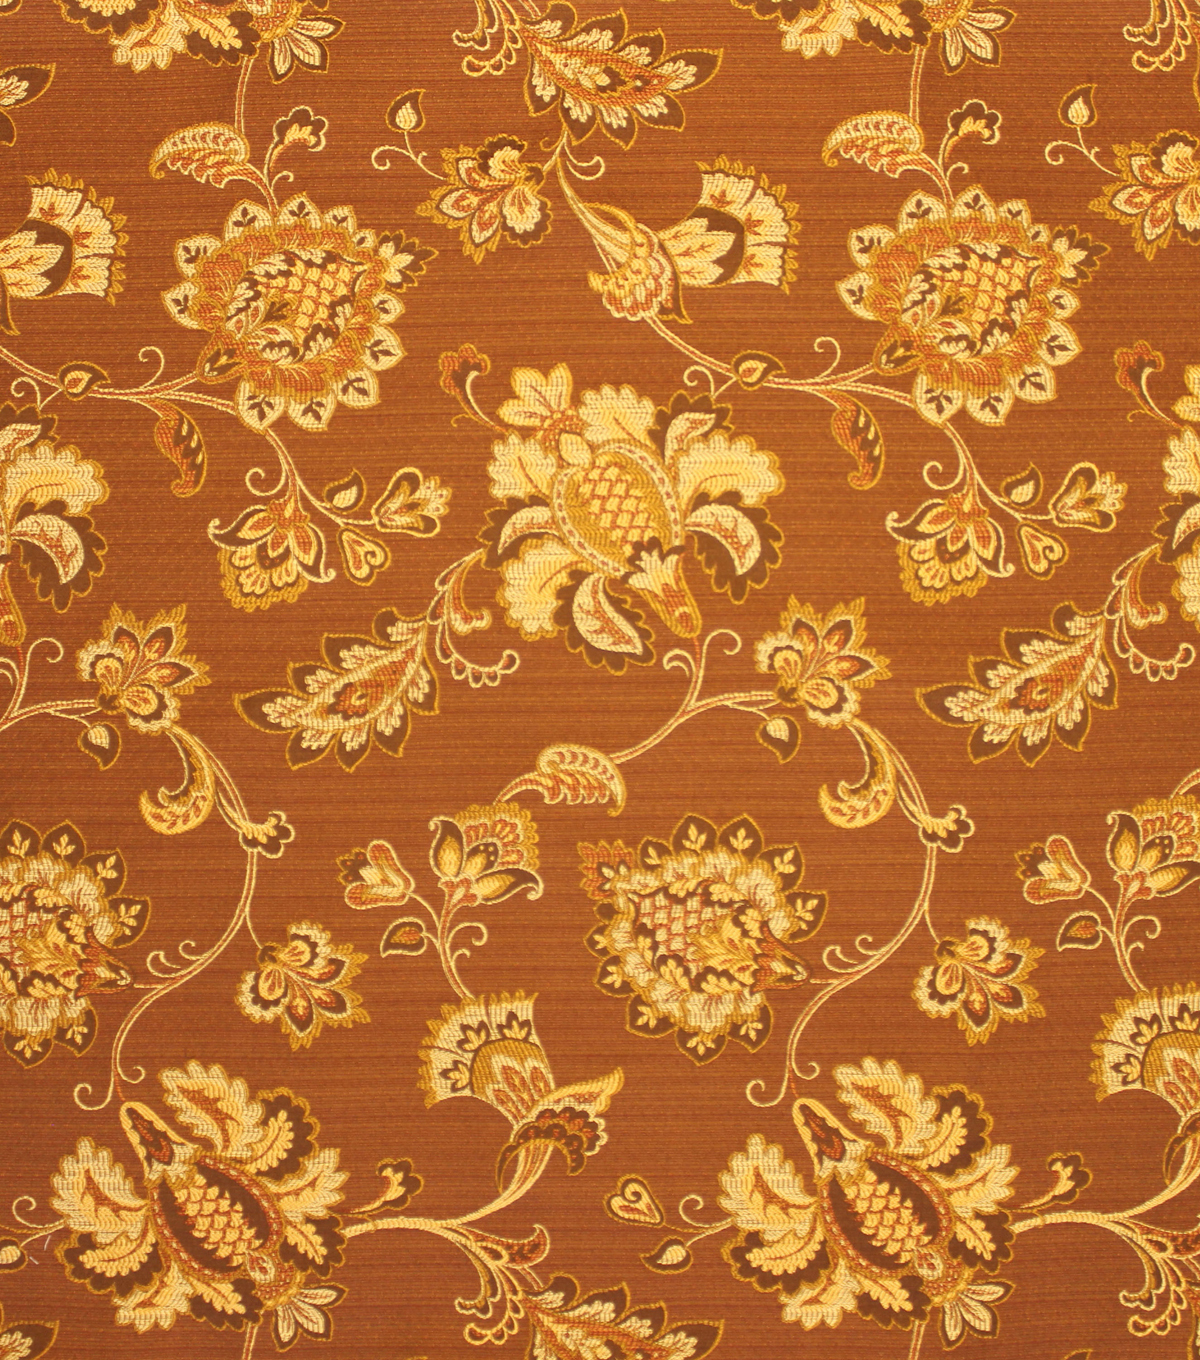 Home Decor 8\u0022x8\u0022 Fabric Swatch-Upholstery Fabric Barrow M8518-5268 Mahogany